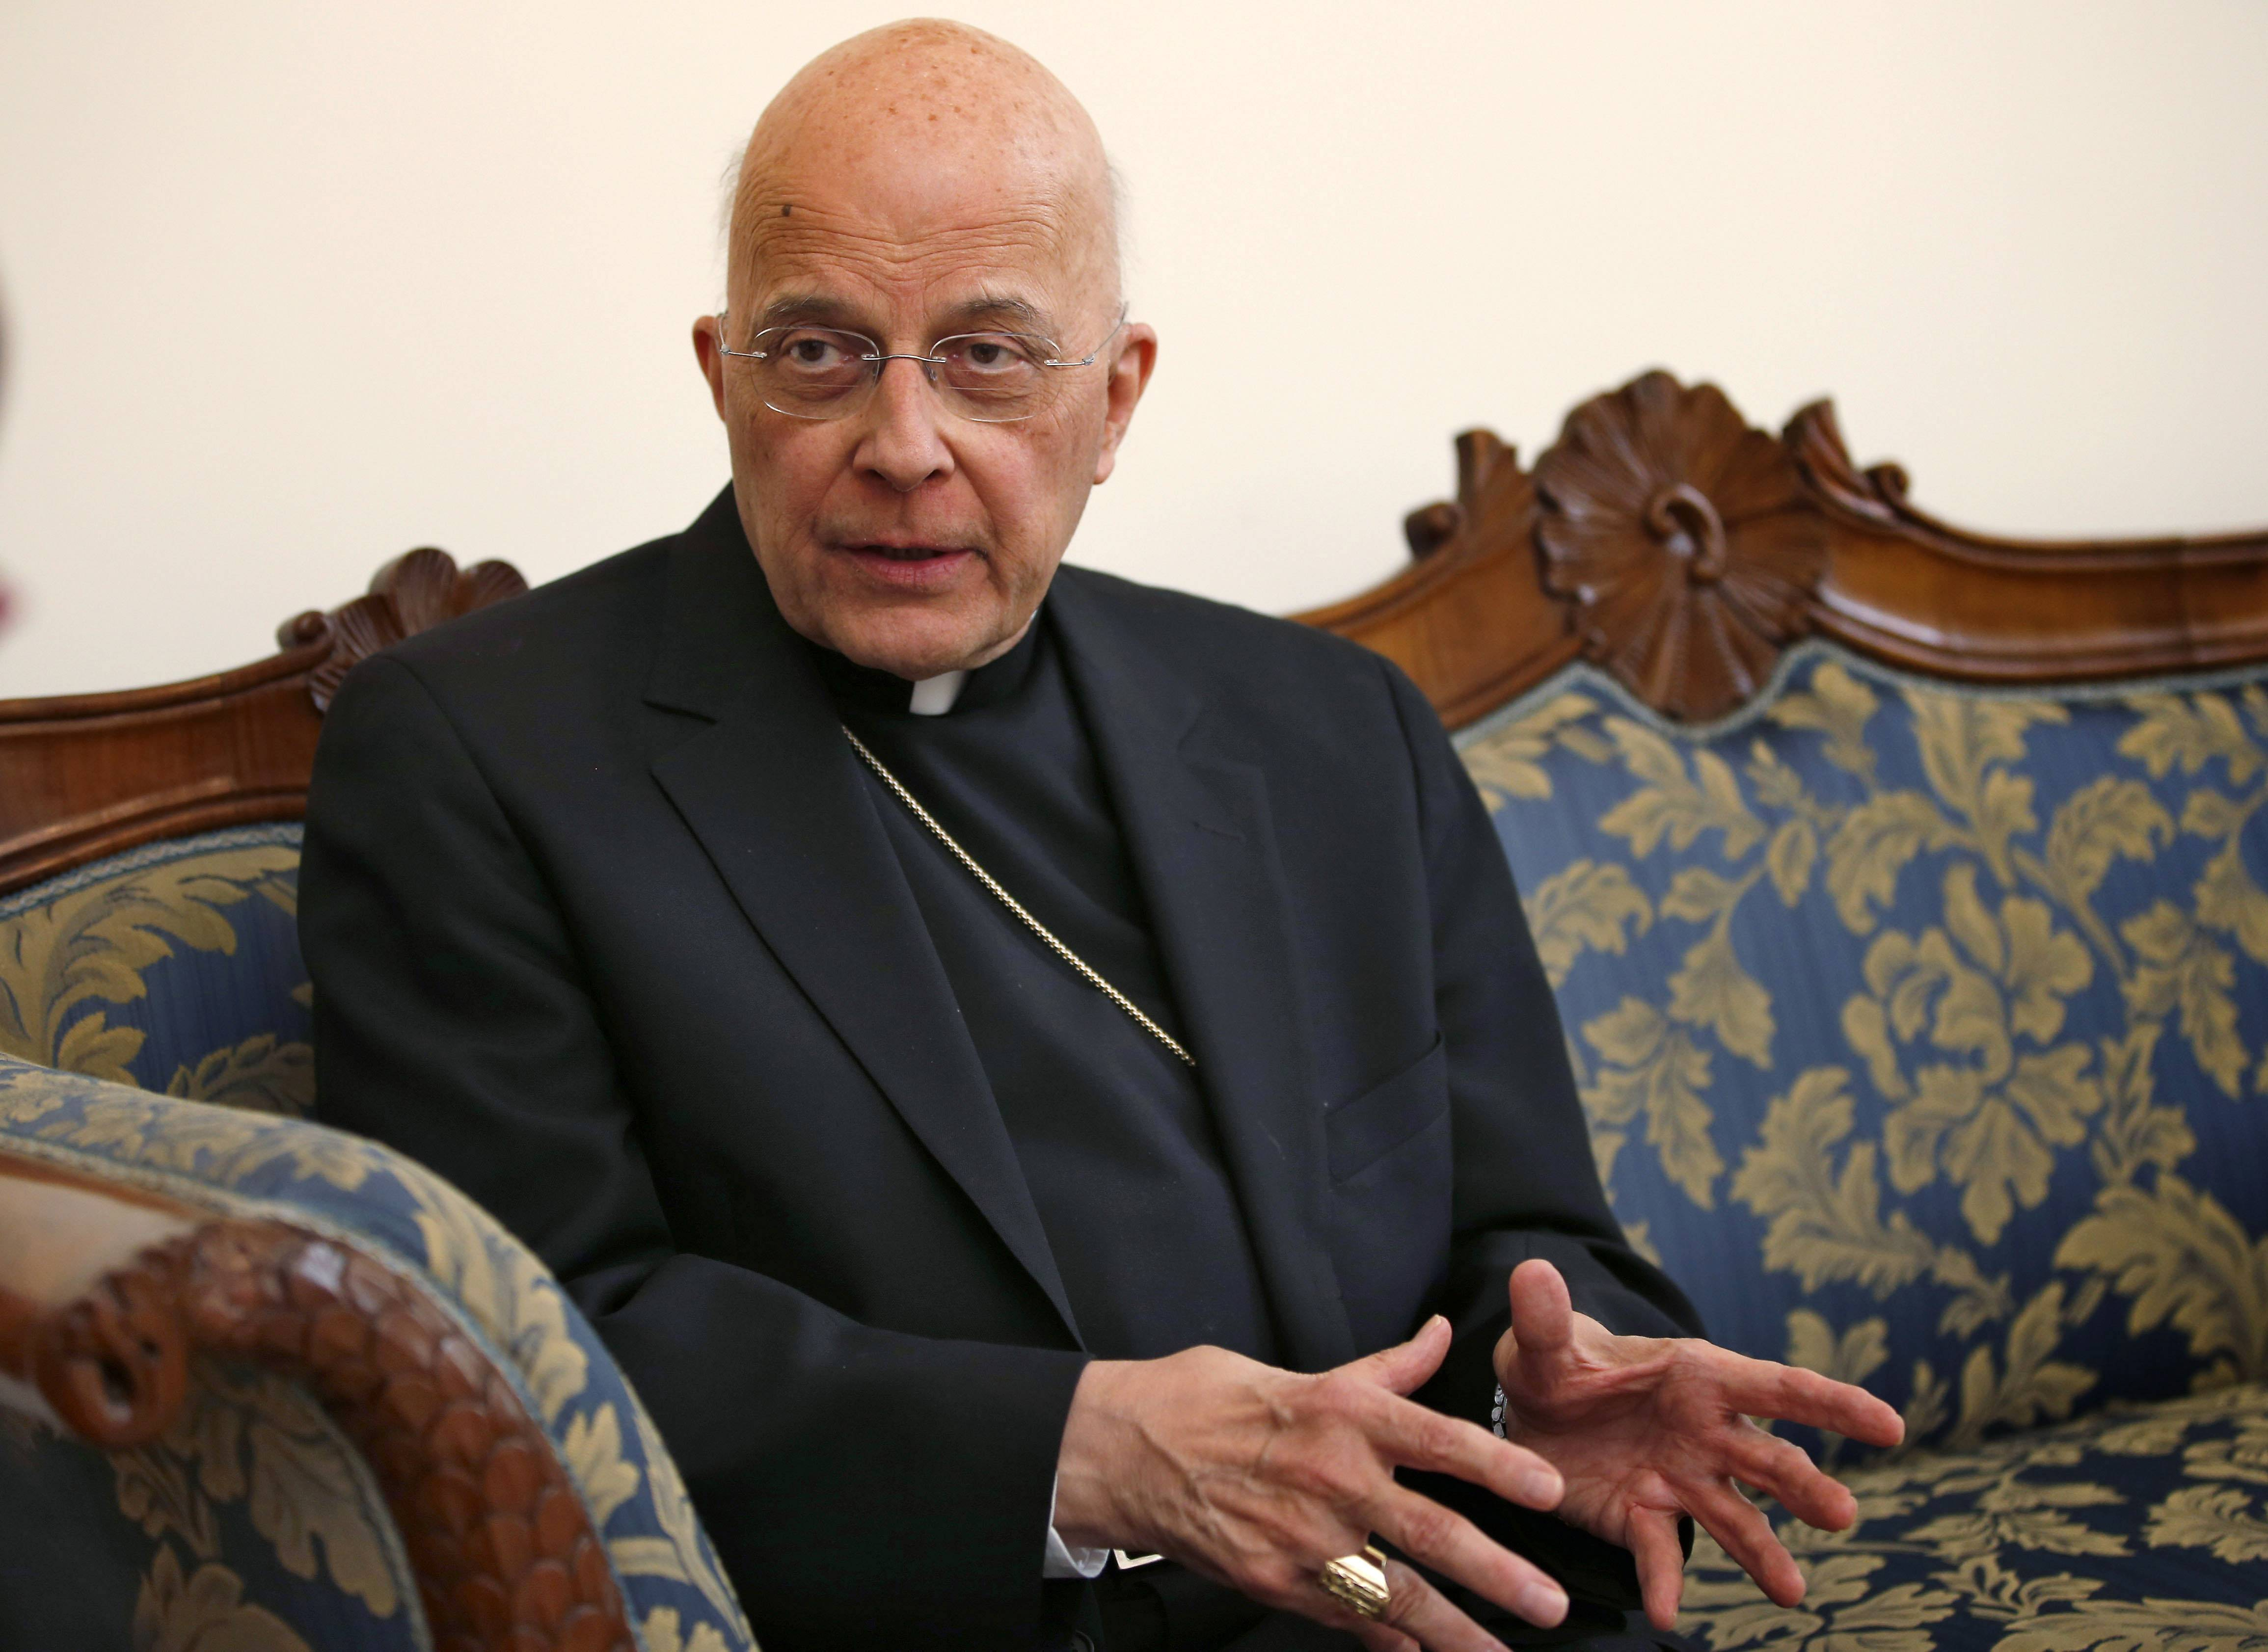 Cardinal in hospital for pain, 'hydration issues'